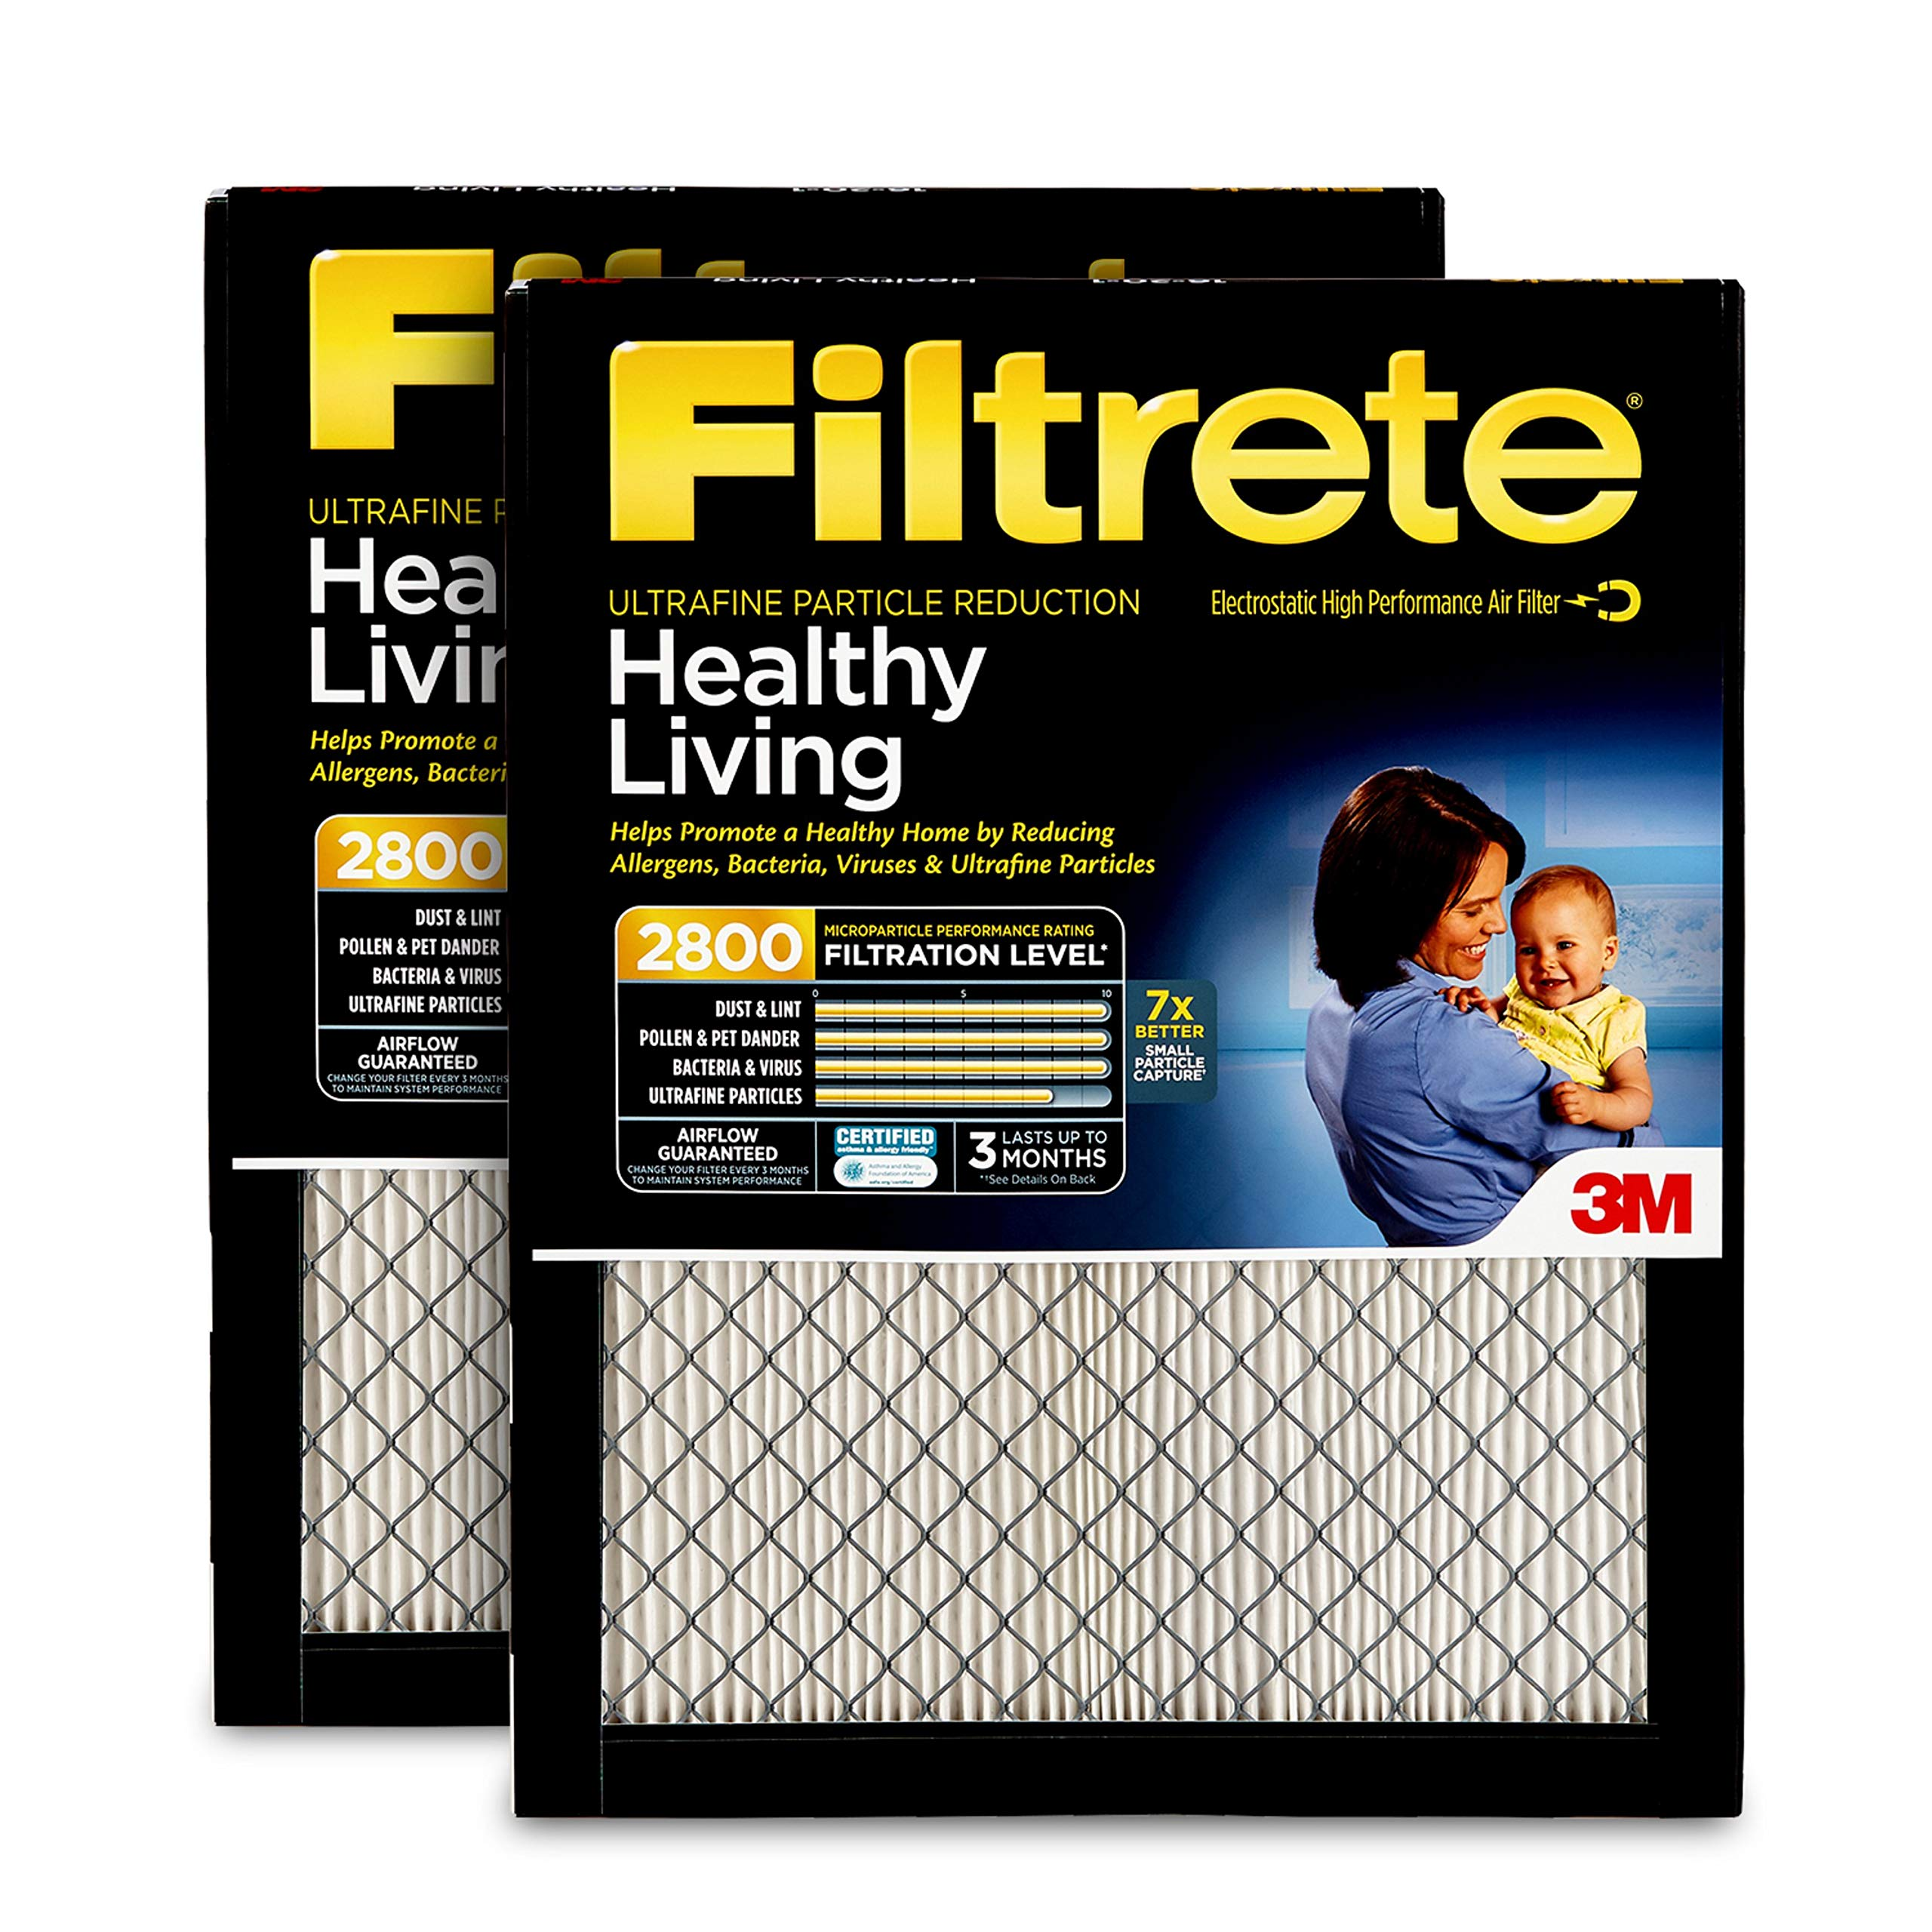 Filtrete 16x25x1, AC Furnace Air Filter, MPR 2800, Healthy Living Ultrafine Particle Reduction, 2-Pack by Filtrete